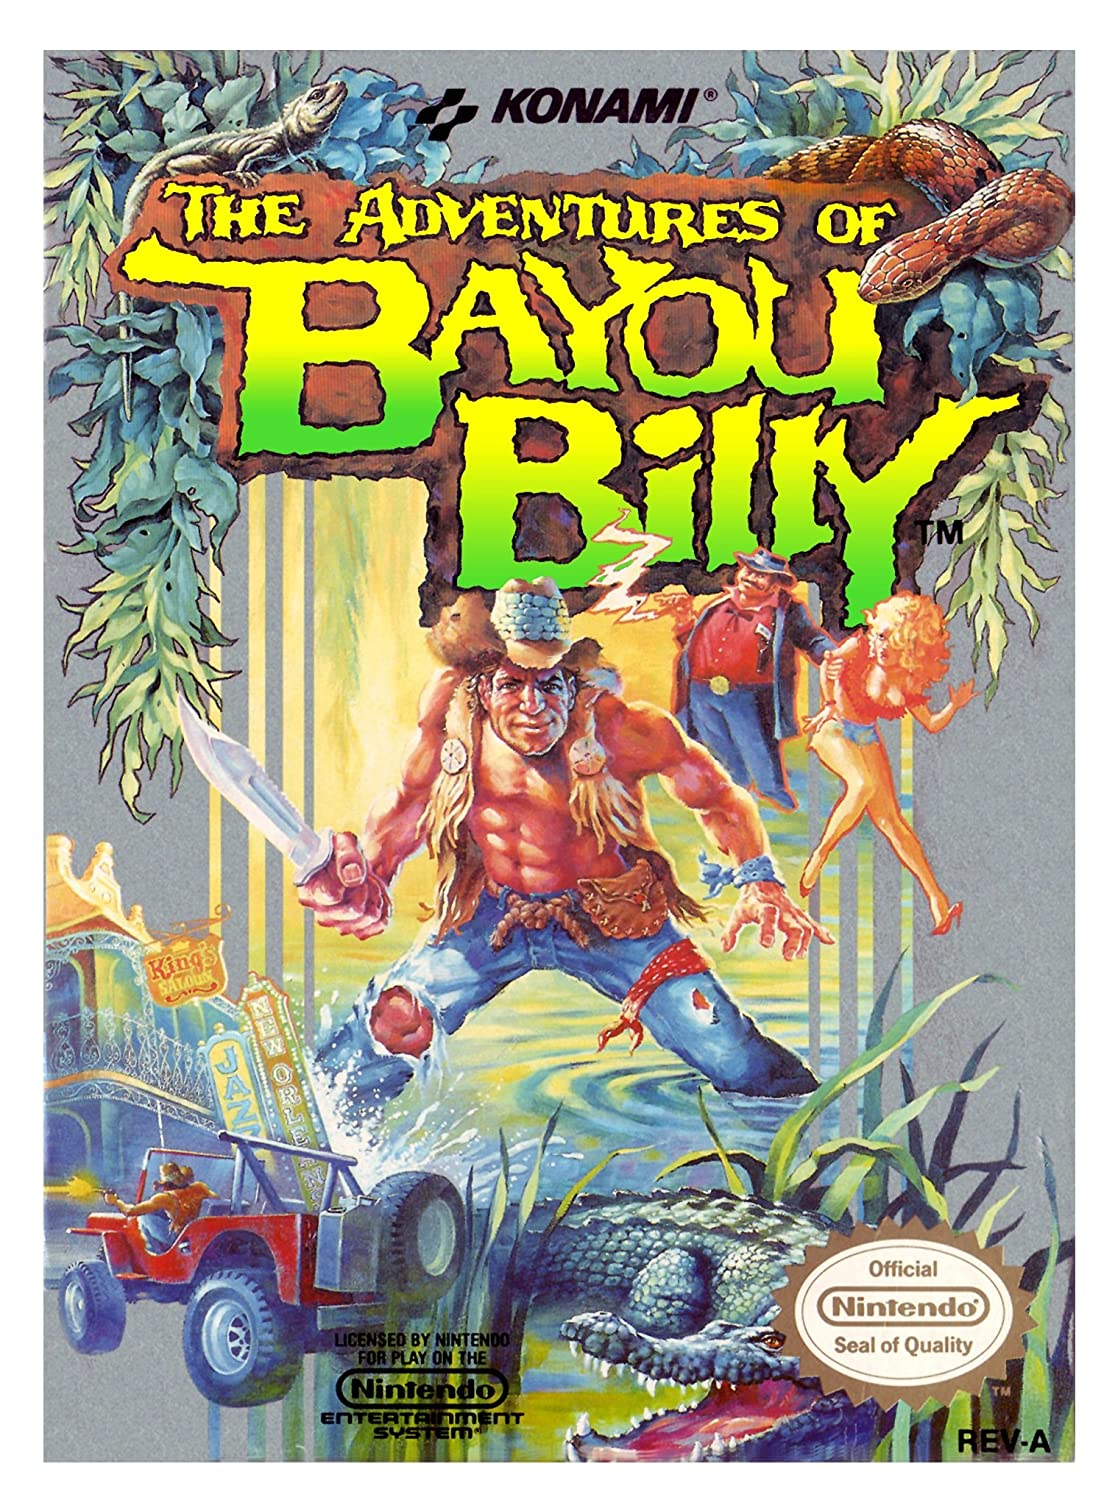 The Adventures of Bayou Billy facts and statistics